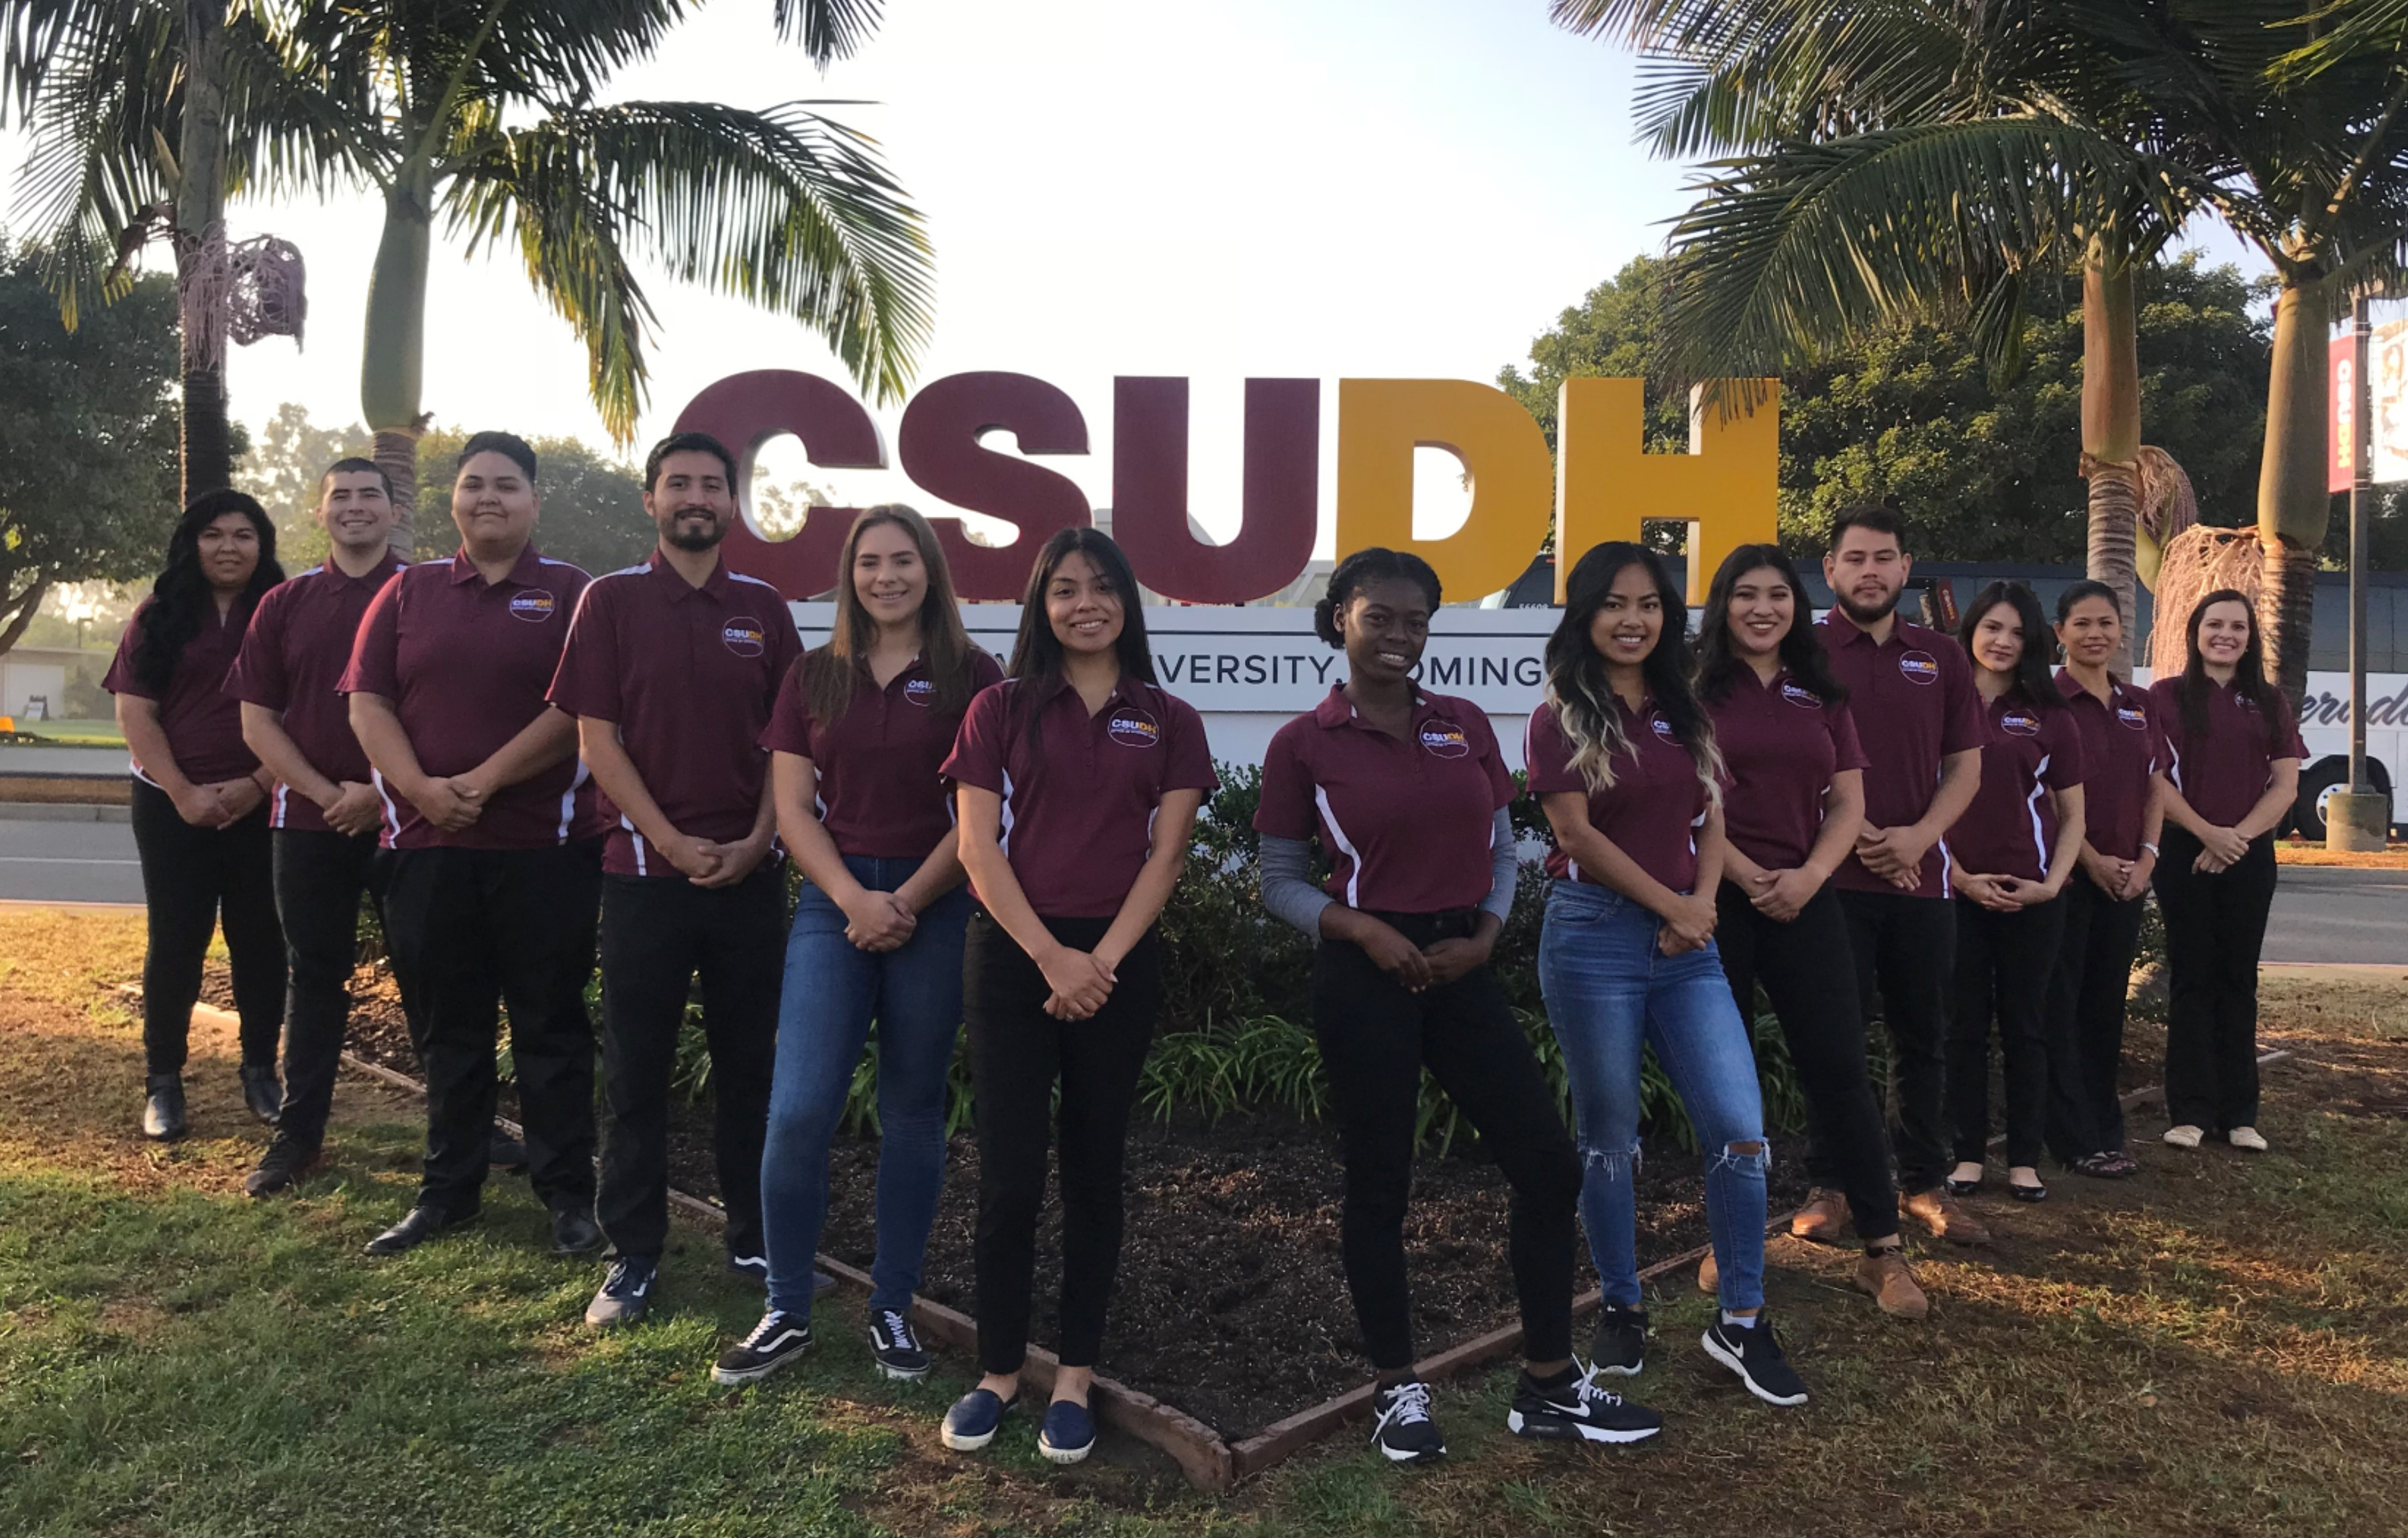 A picture of all staff members who work in the Office of Student Life standing in front of the large CSUDH sign on Victoria Street.